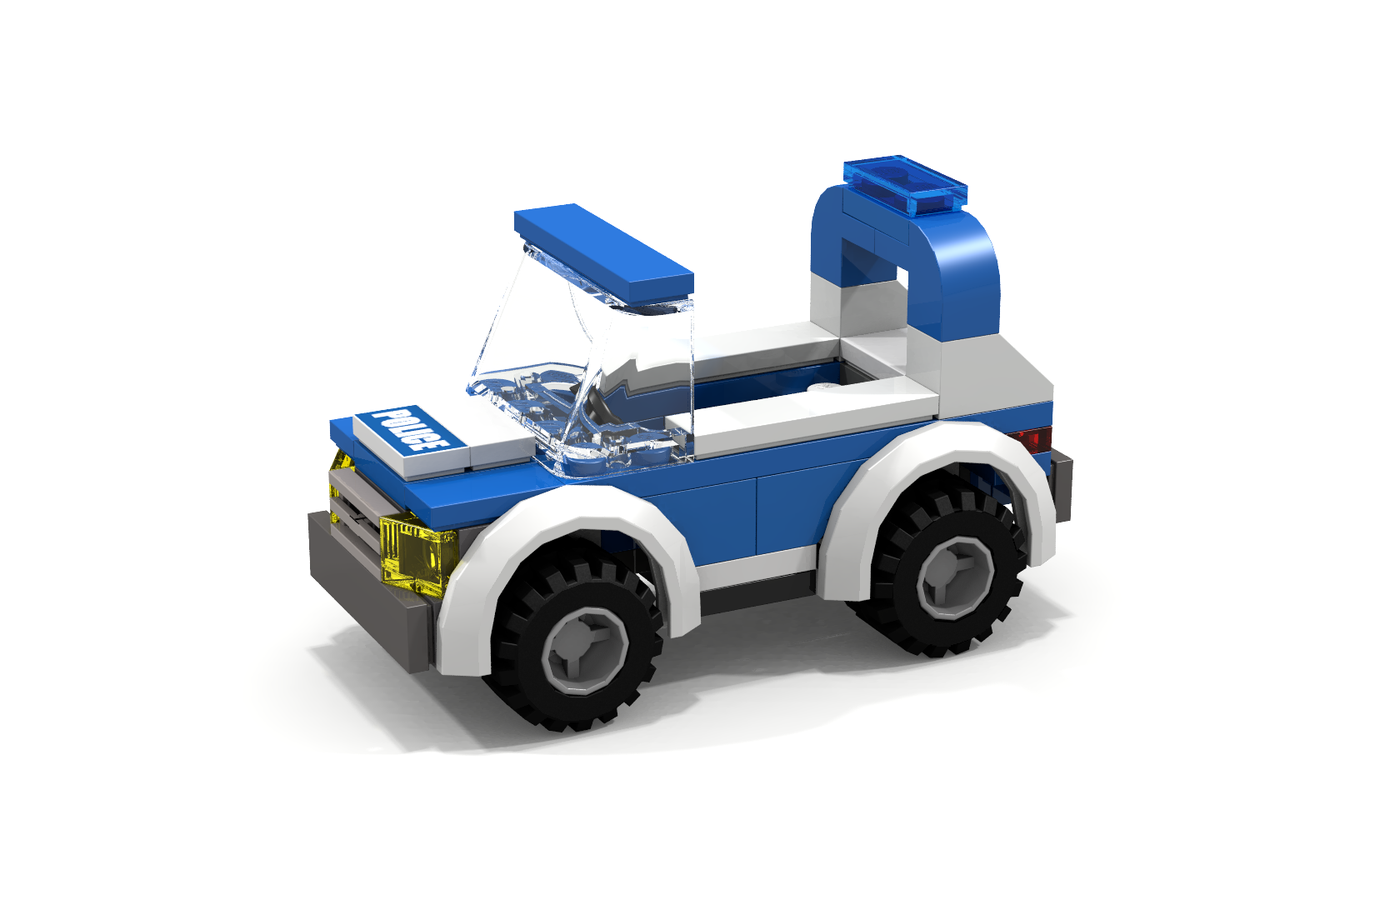 lego police vehicle instructions